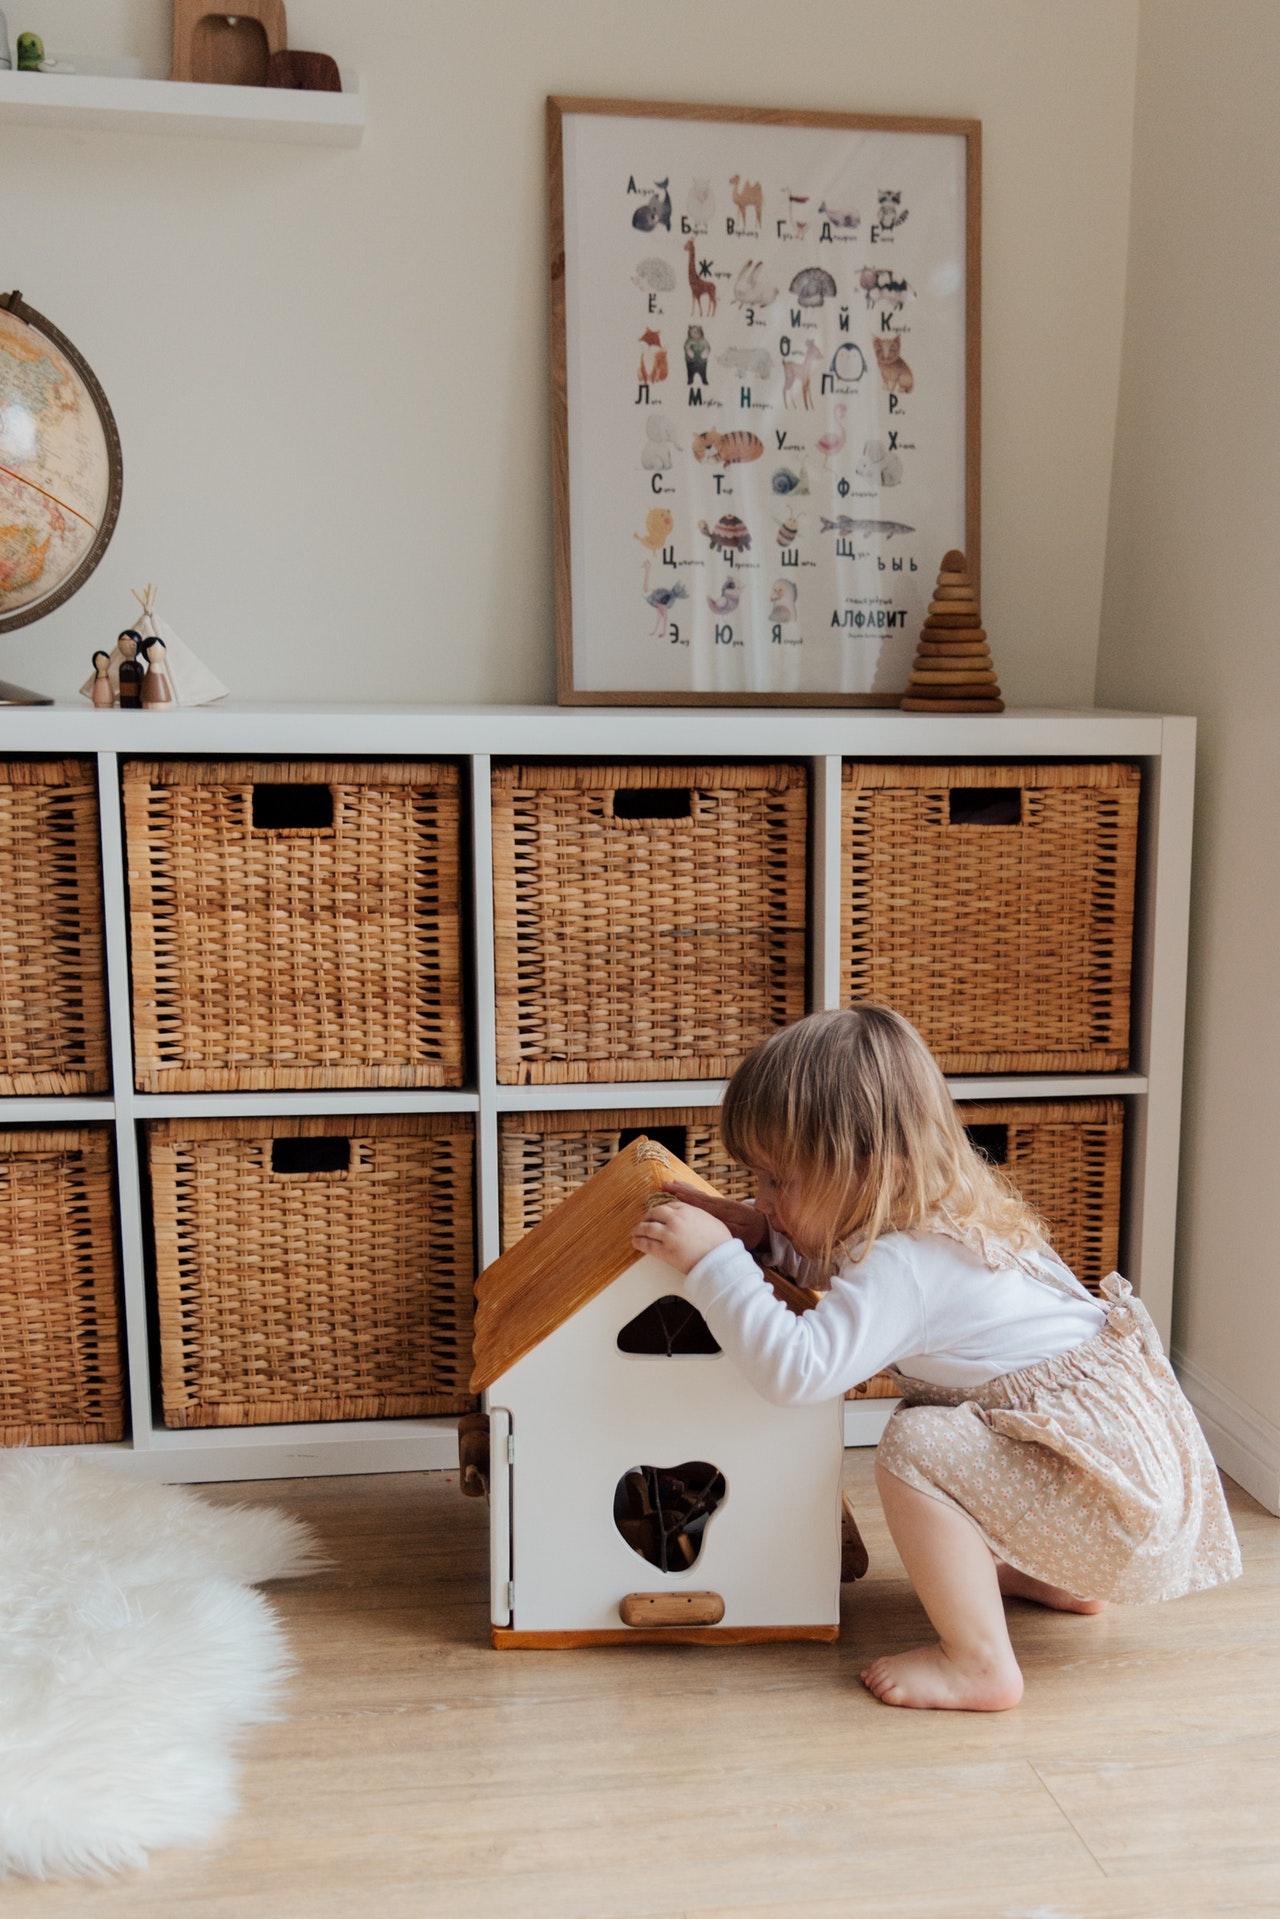 Ikea storage baskets and book shelves in a child's room